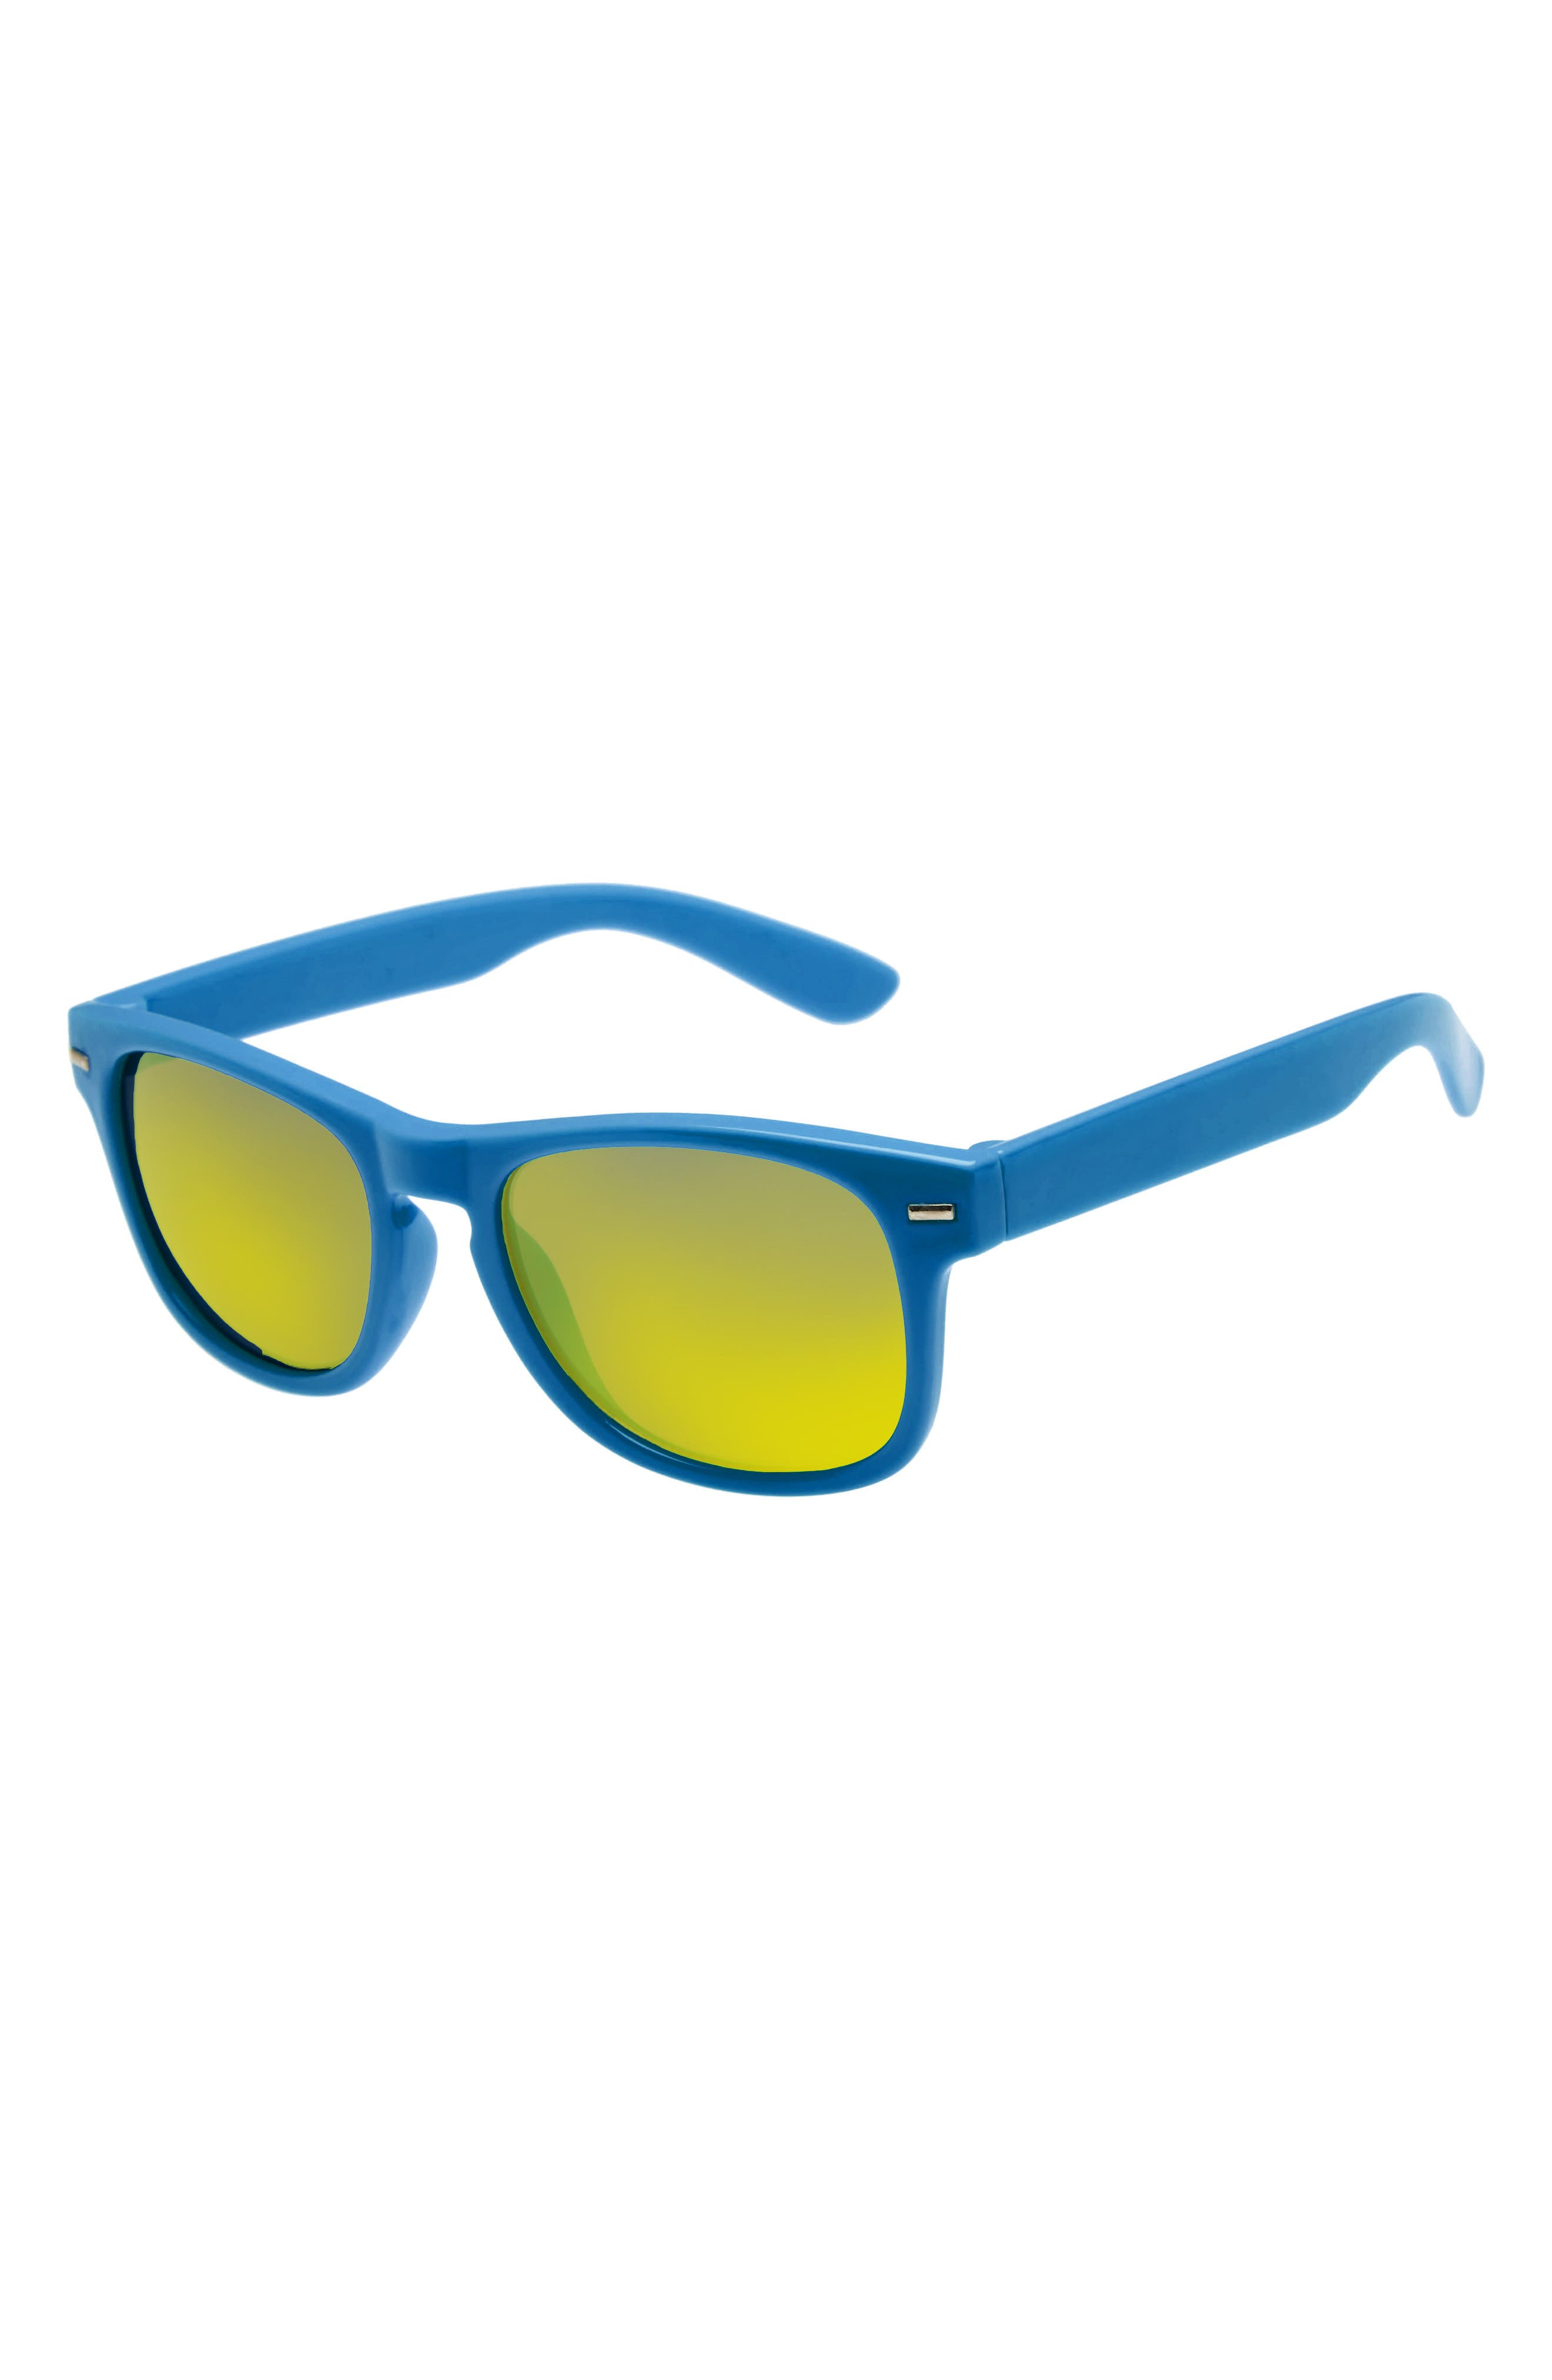 Mirrored Sunglasses,                             Main thumbnail 1, color,                             401